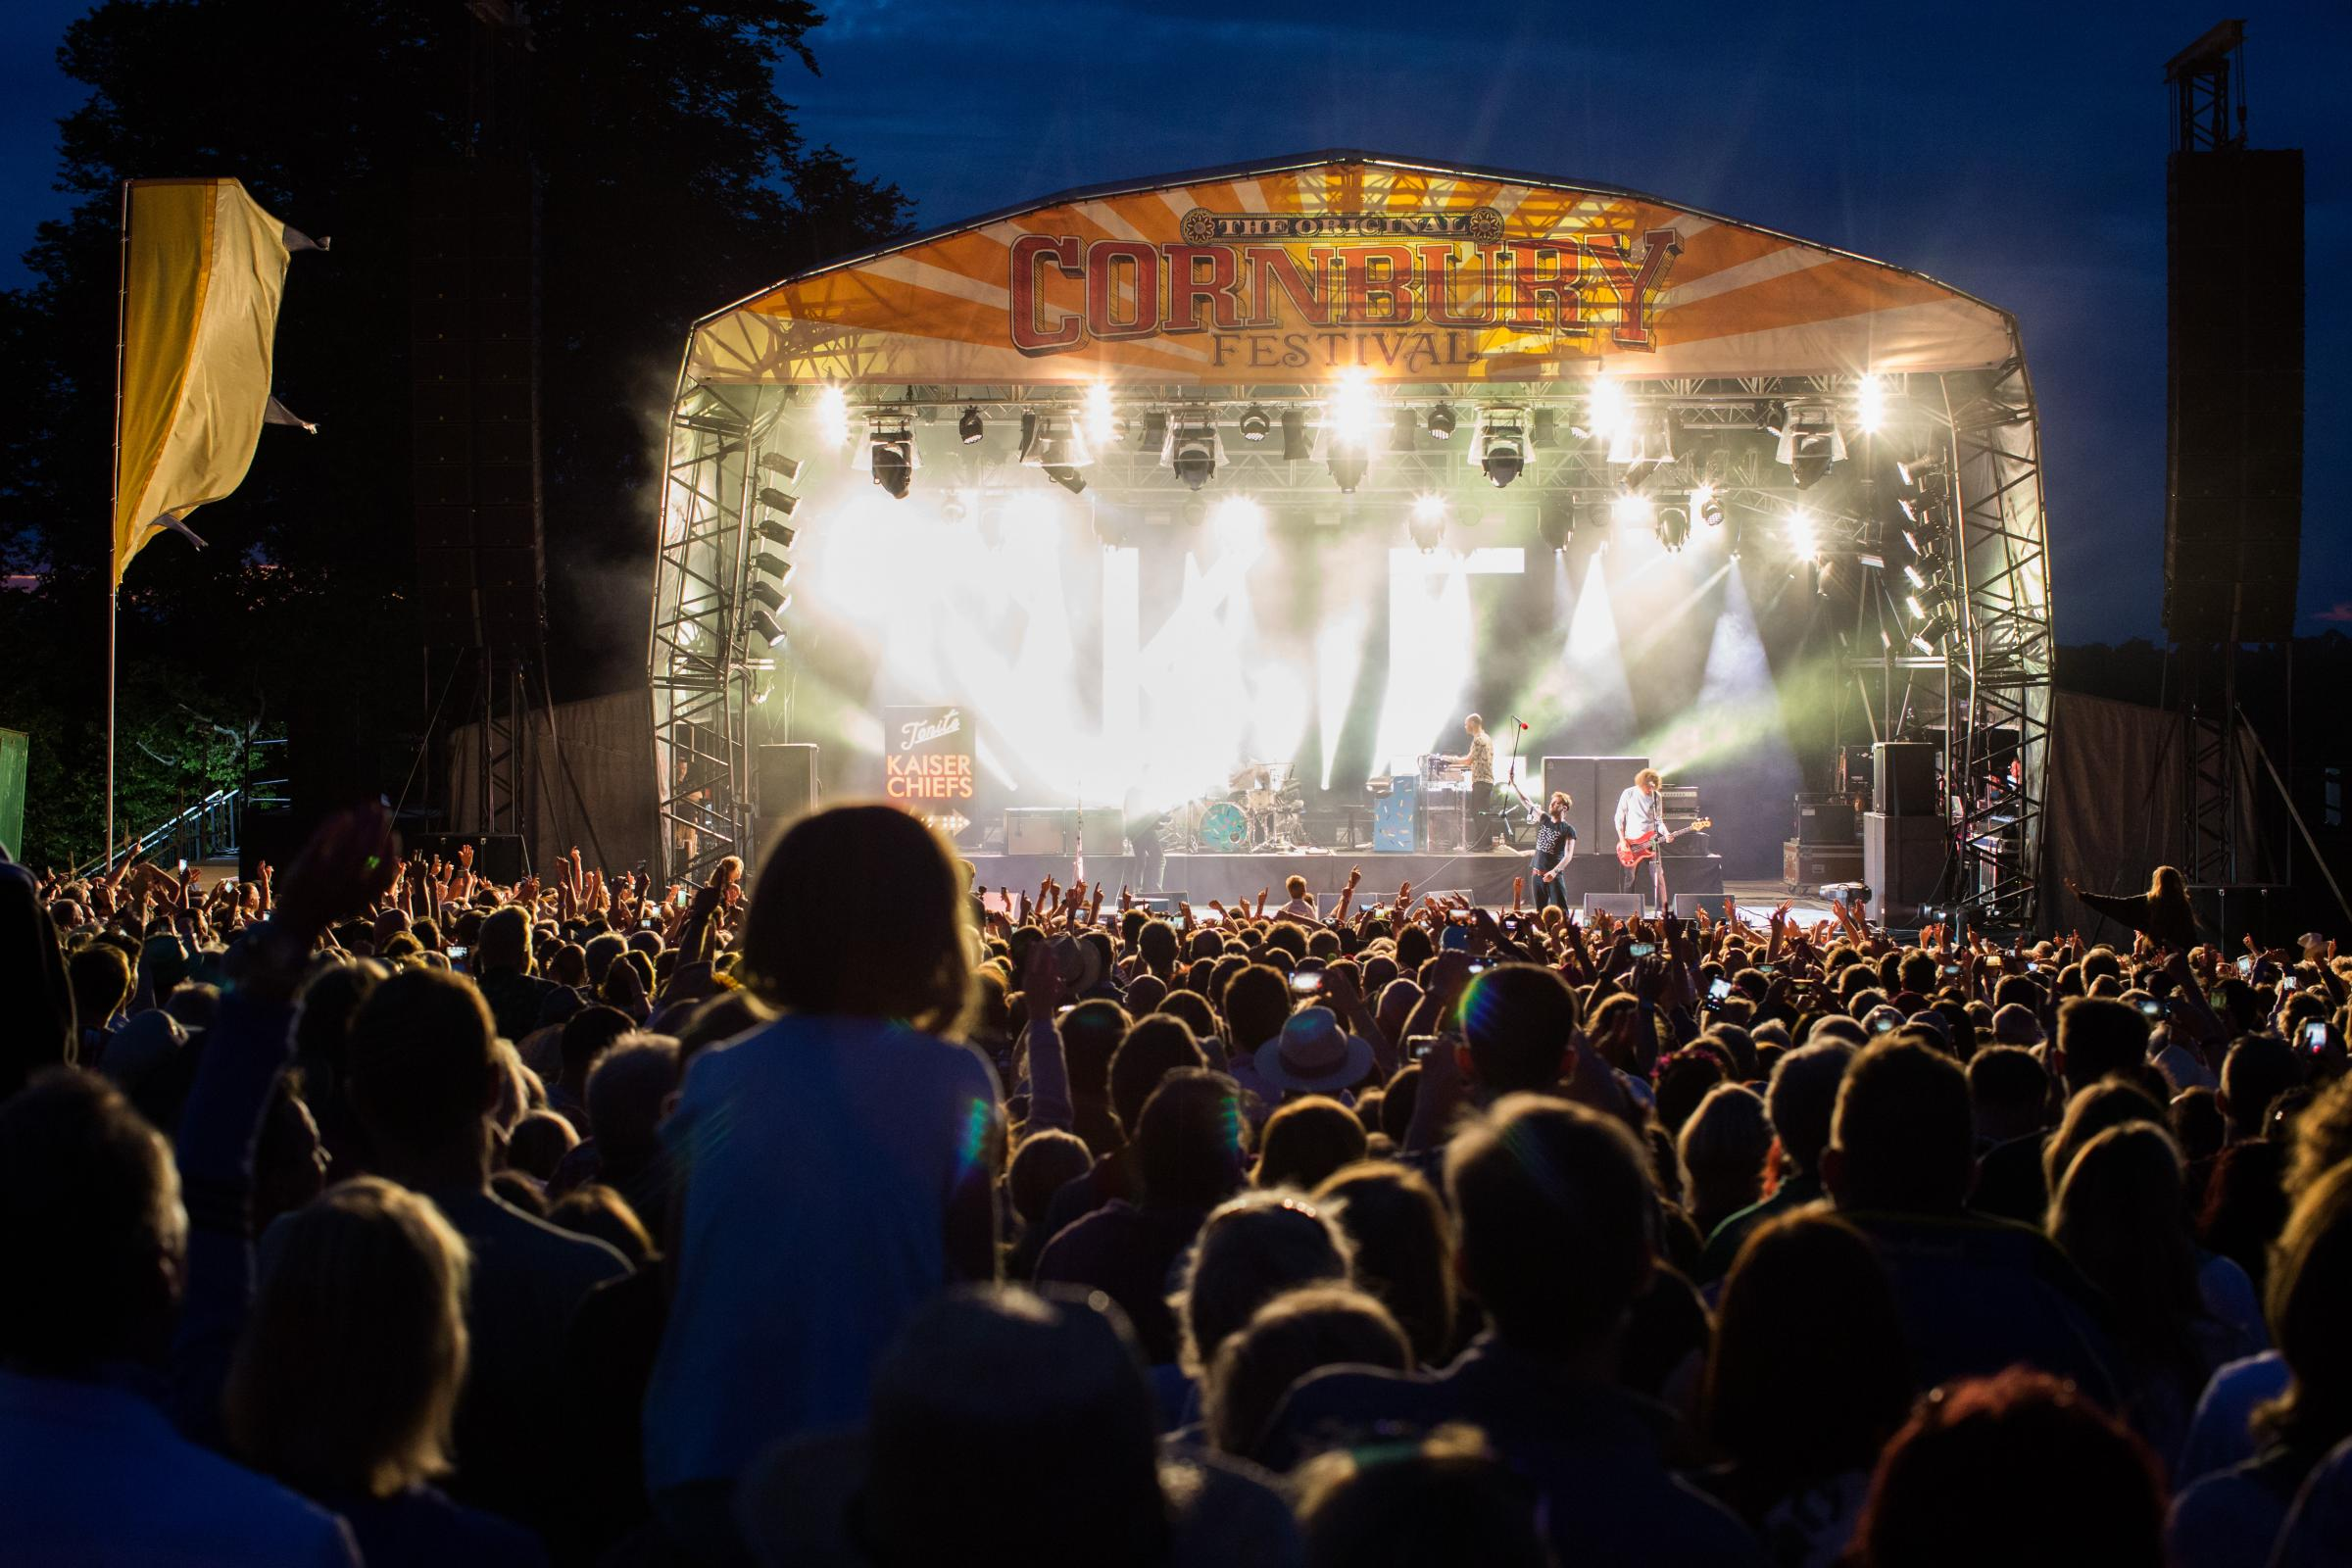 All lit up: The main stage at Cornbury looks spectacular by night                                     Picture: Ben Phillips